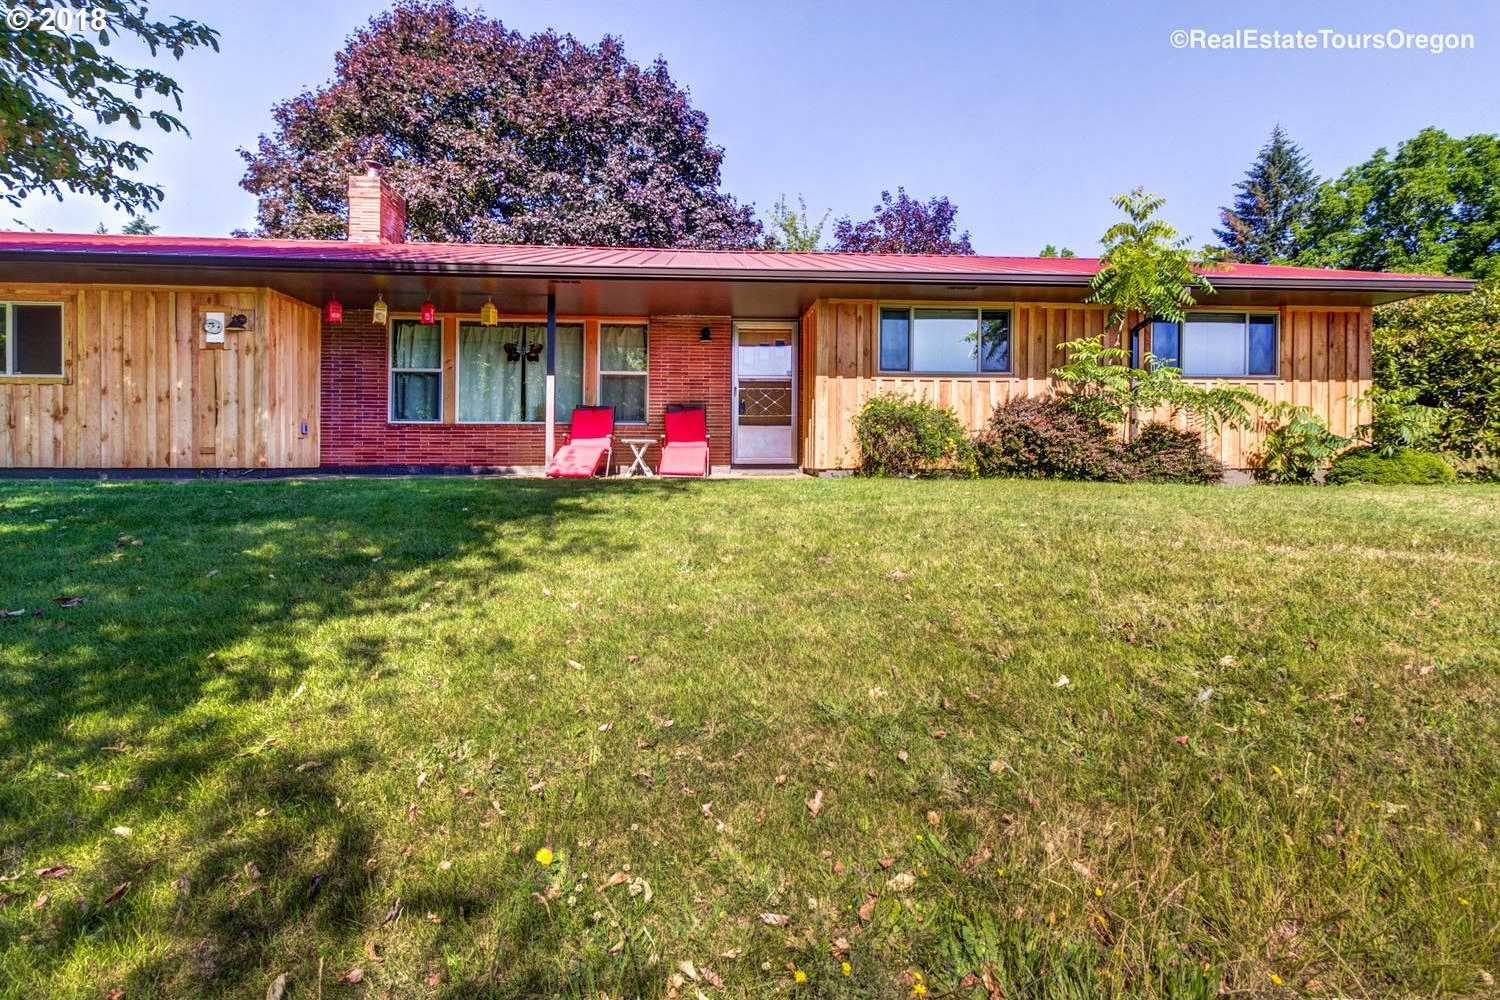 $1,550,000 - 3Br/2Ba -  for Sale in Newberg